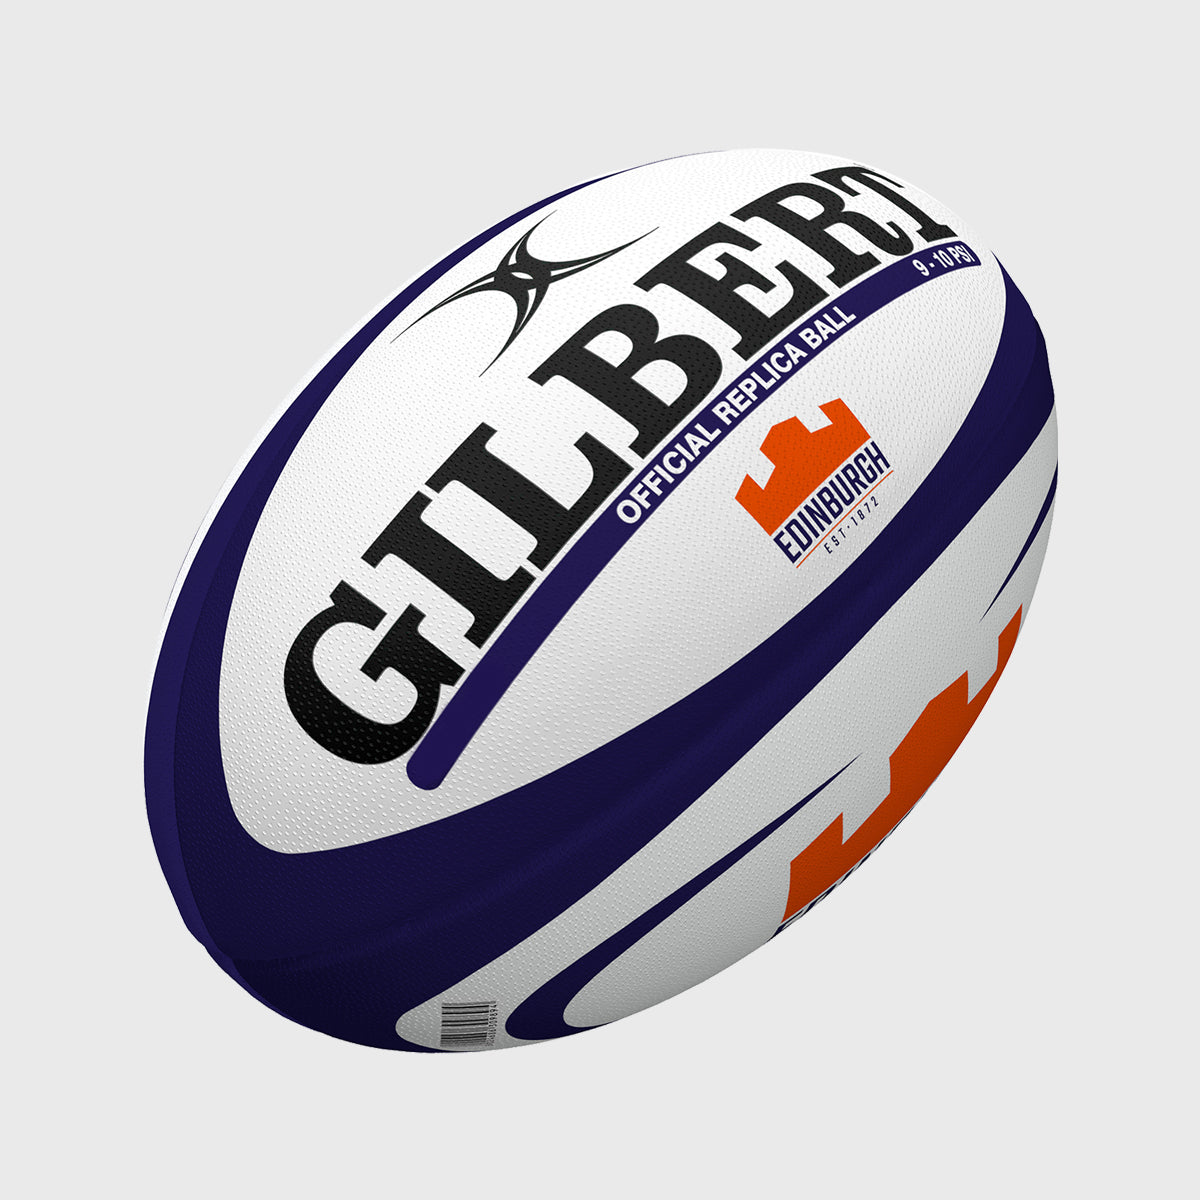 Edinburgh Rugby Midi Ball Navy/Orange - First XV rugbystuff.com